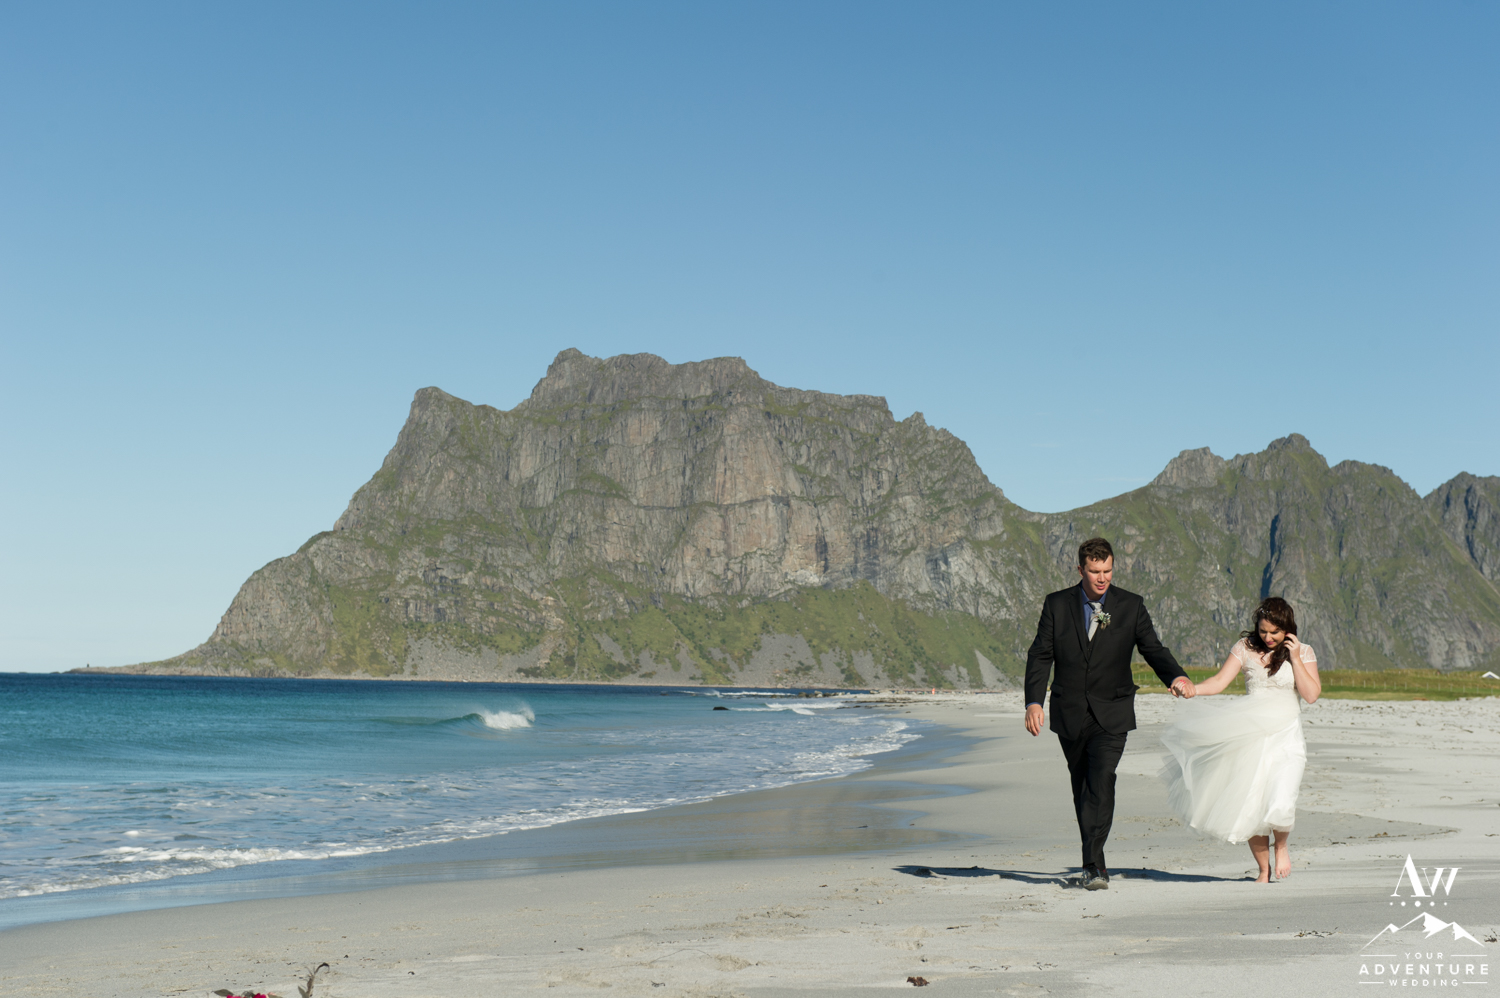 lofoten-islands-wedding-photos-your-adventure-wedding-46